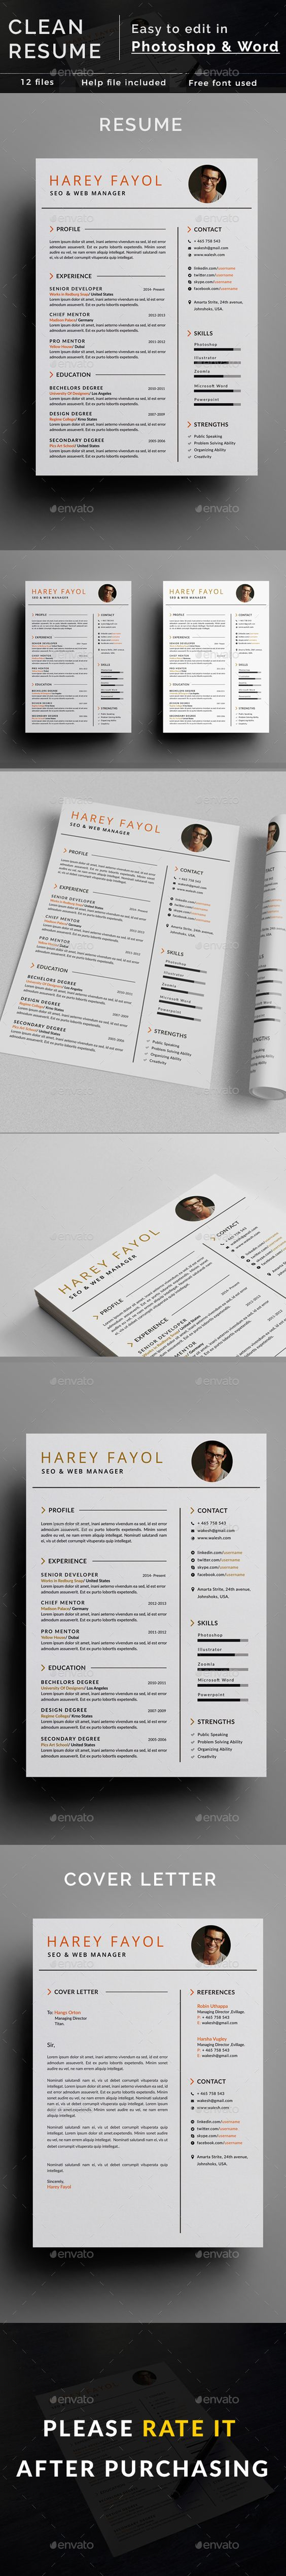 Resume Resume Resume Templates and Stationery Tutorial